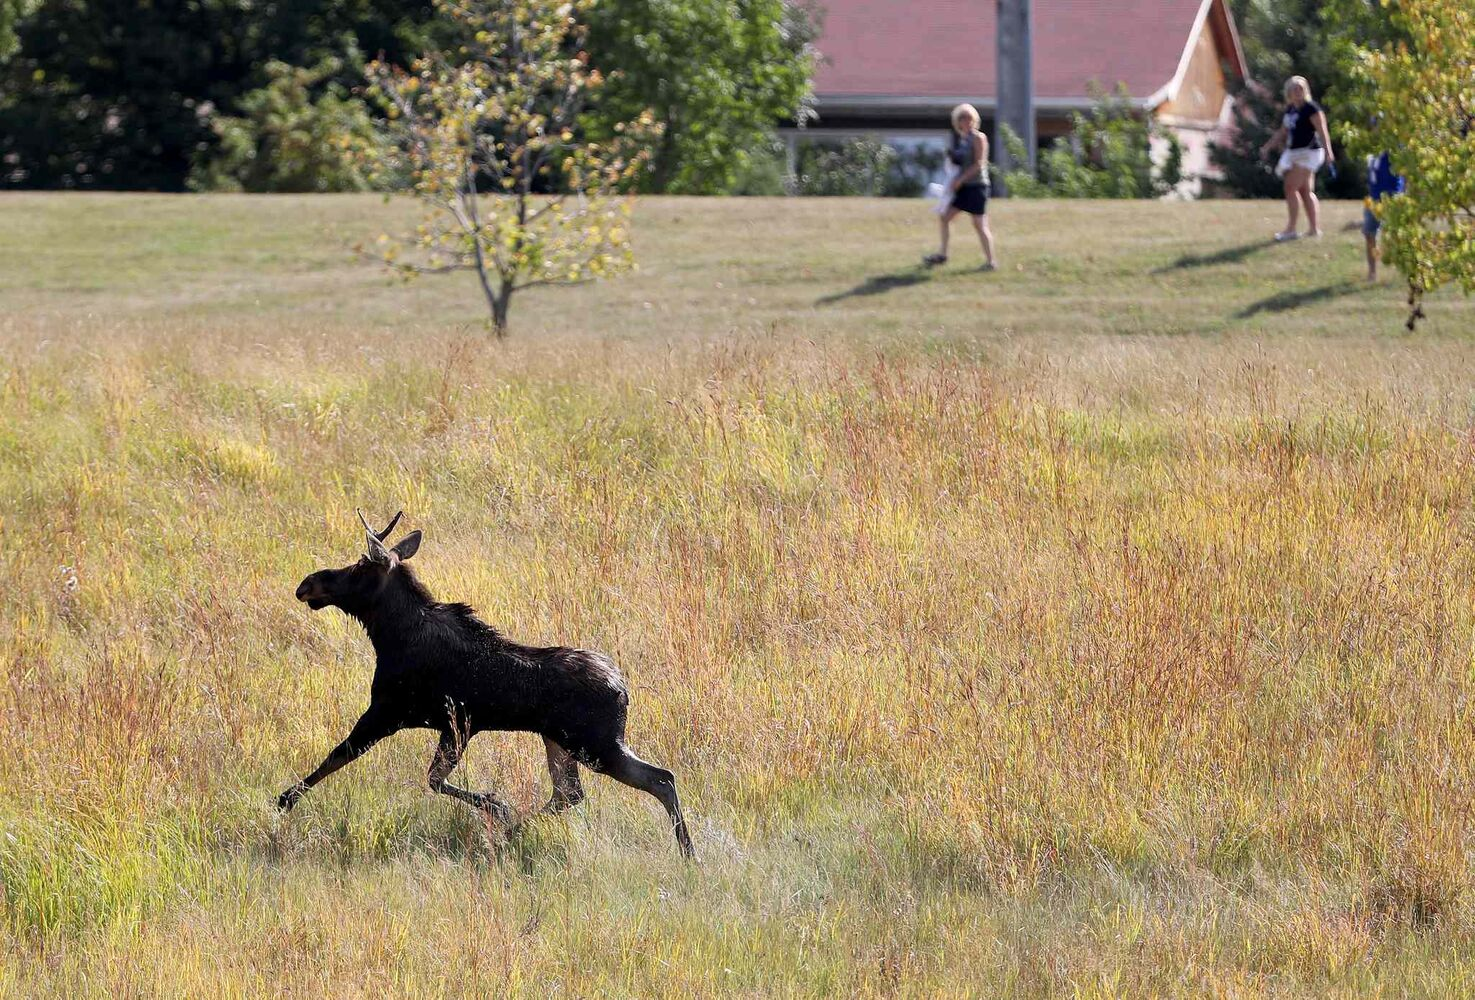 TREVOR HAGAN / WINNIPEG FREE PRESS</p><p>Winnipeg police and the department of fisheries try to contain a moose near the corner of Pembina Highway and Chancellor Matheson, Saturday.</p>